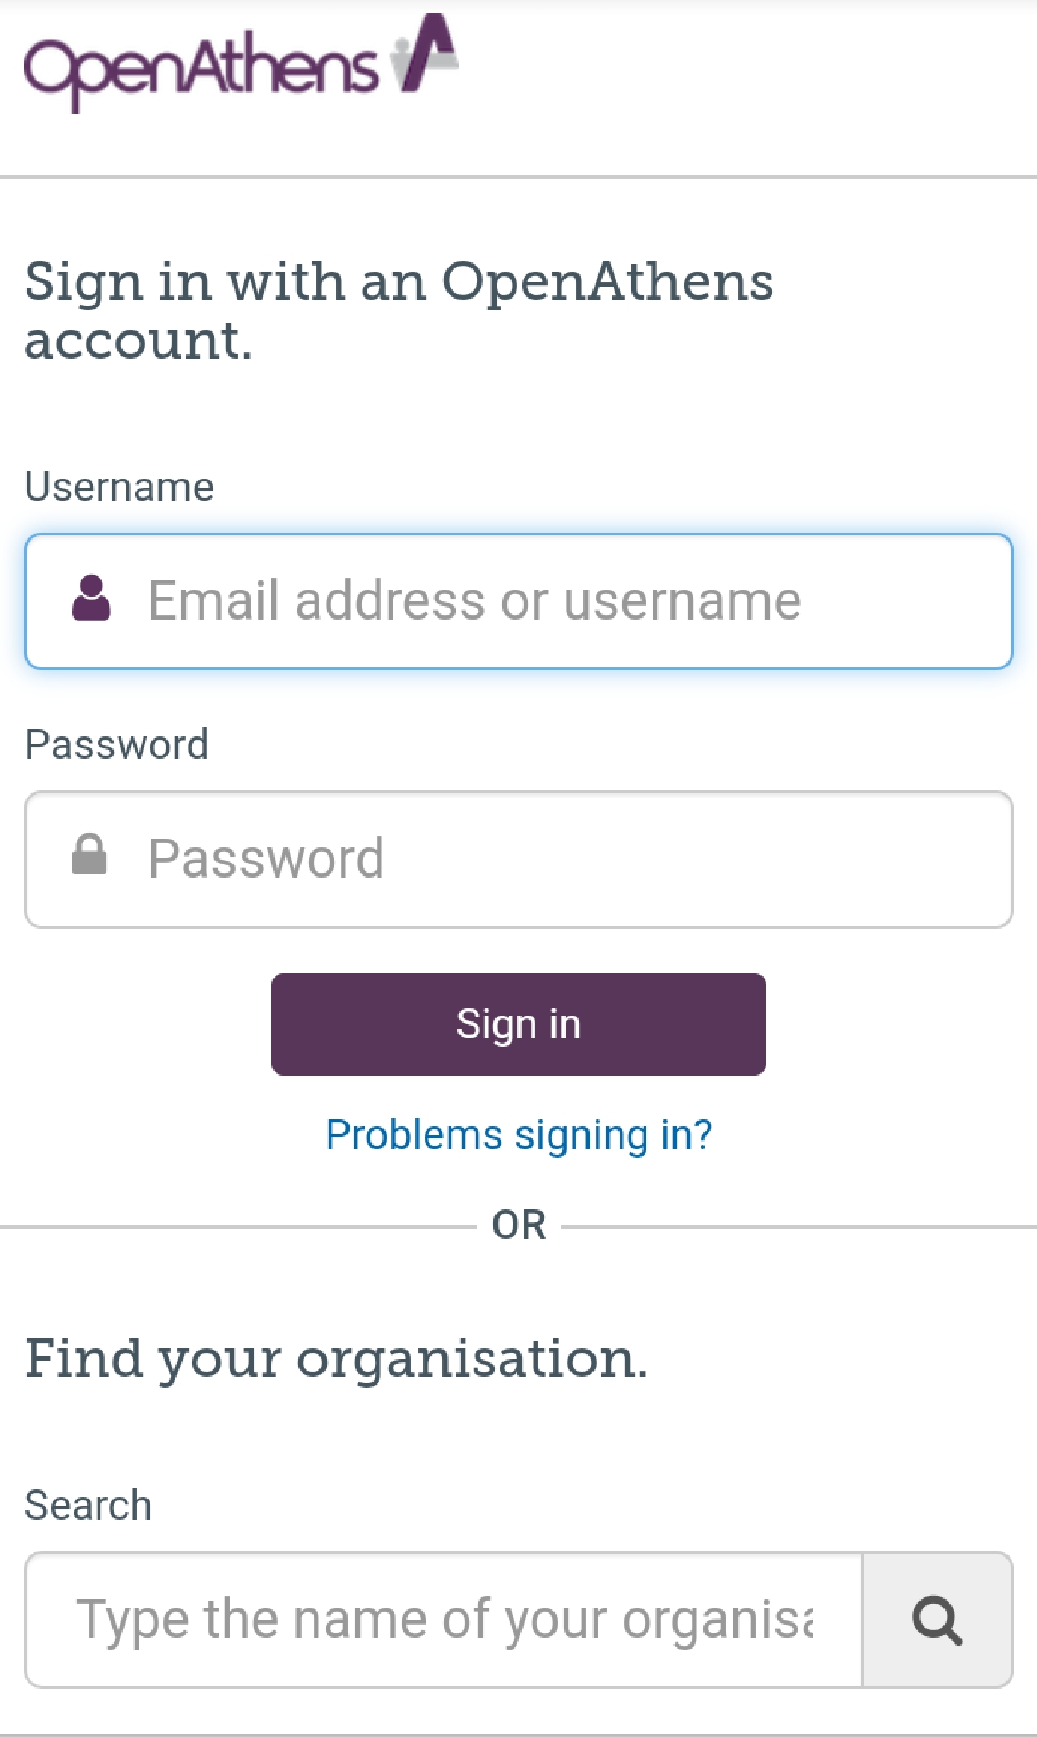 Picture of the OpenAthens log in box. There are two sections. The first section is where users can sign in with an OpenAthens account. The second section is entitled find you organisation. It has a search box where you can search for the name of your institution.